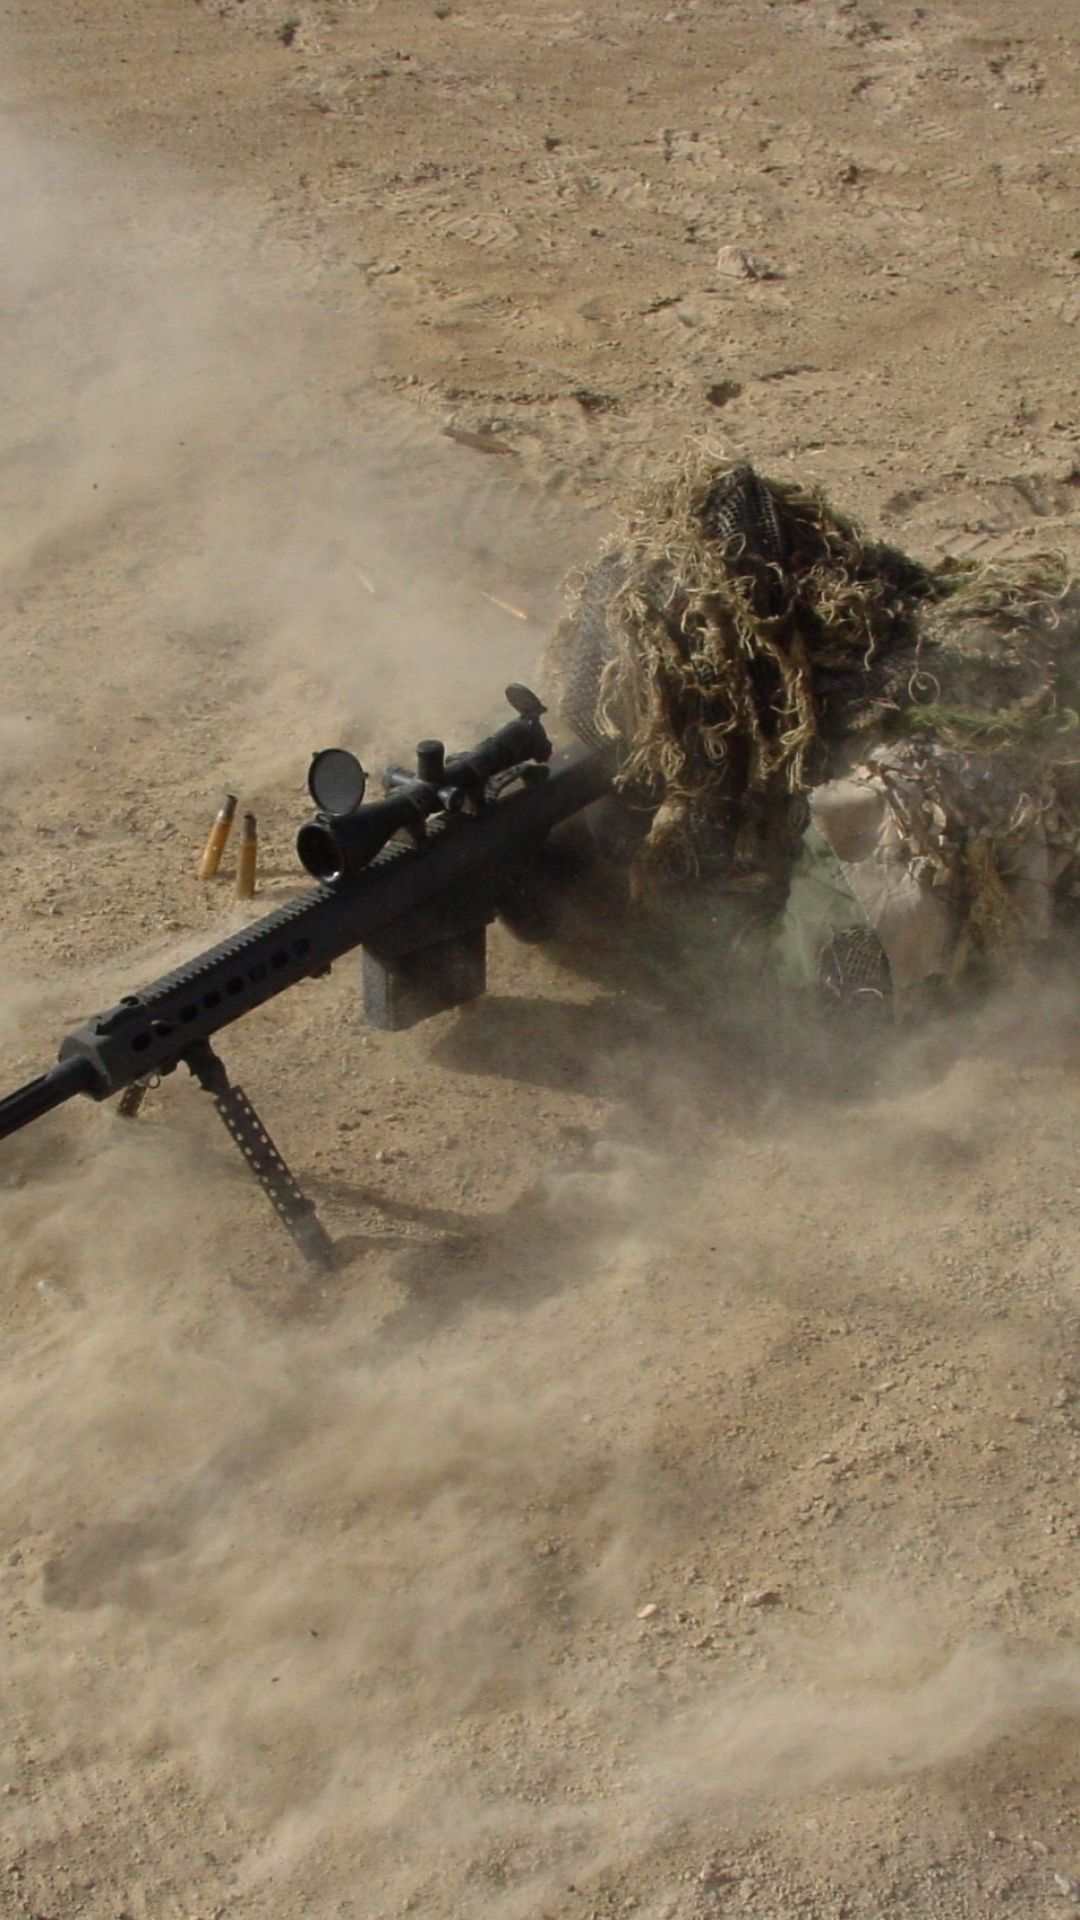 Military Sniper Weapons Sniper Rifle Weapon Soldier Mobile Wallpaper